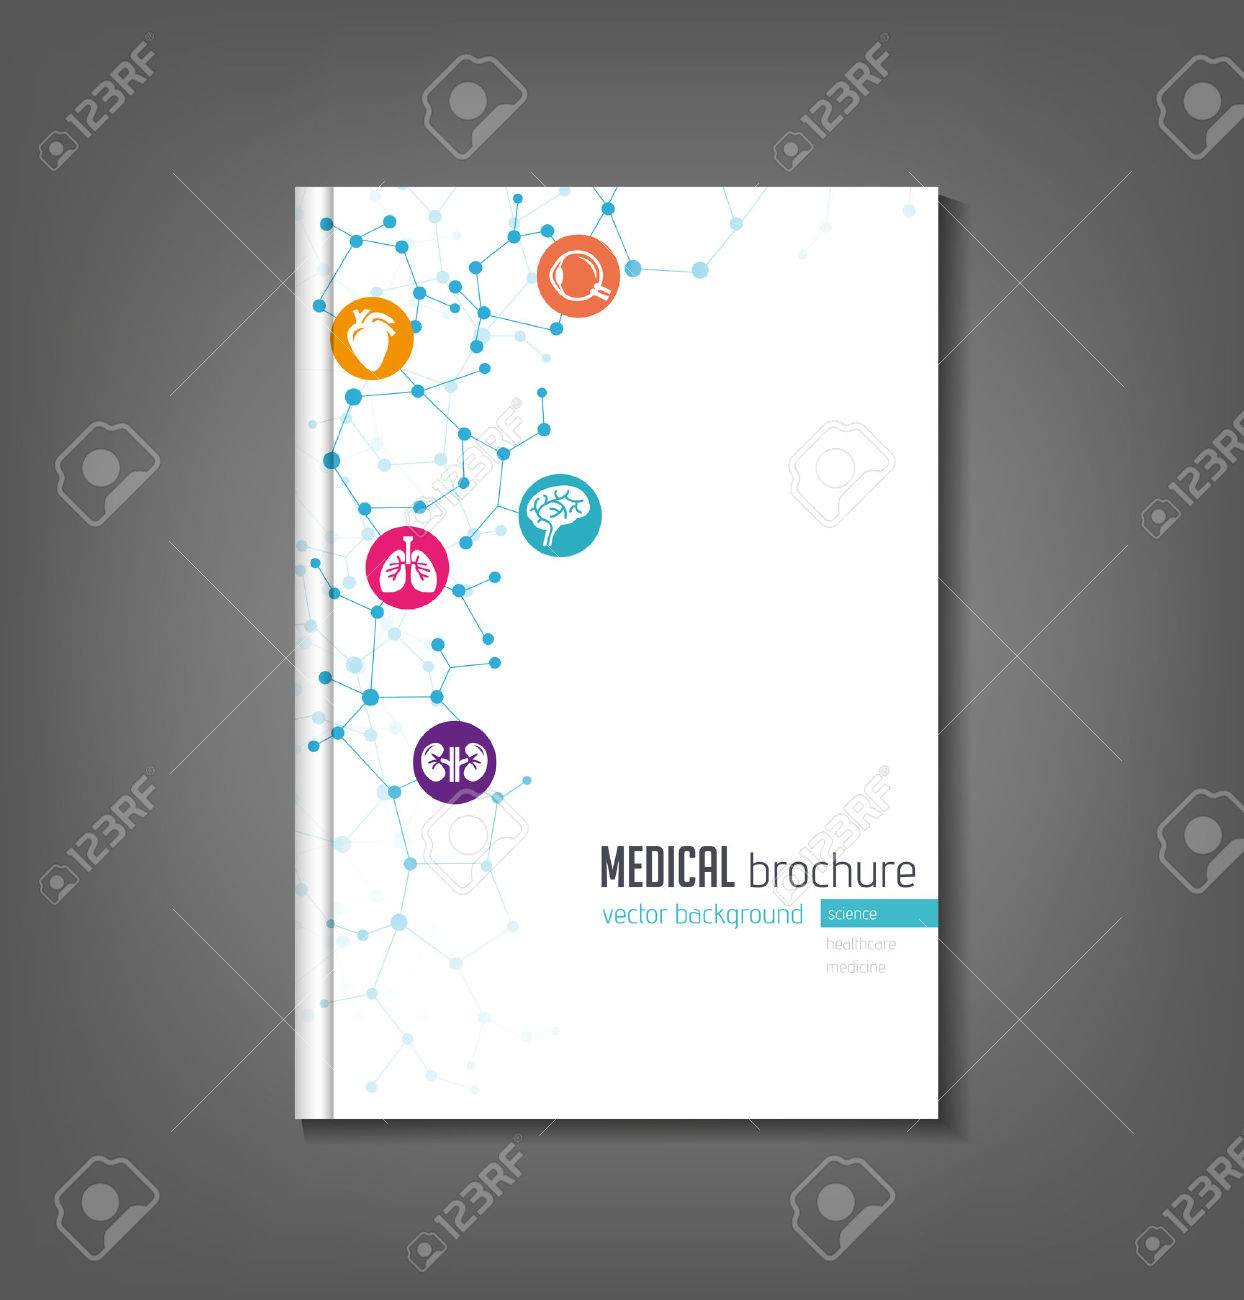 Brochure template - medical topics, healthcare, science, technology. - 50453676